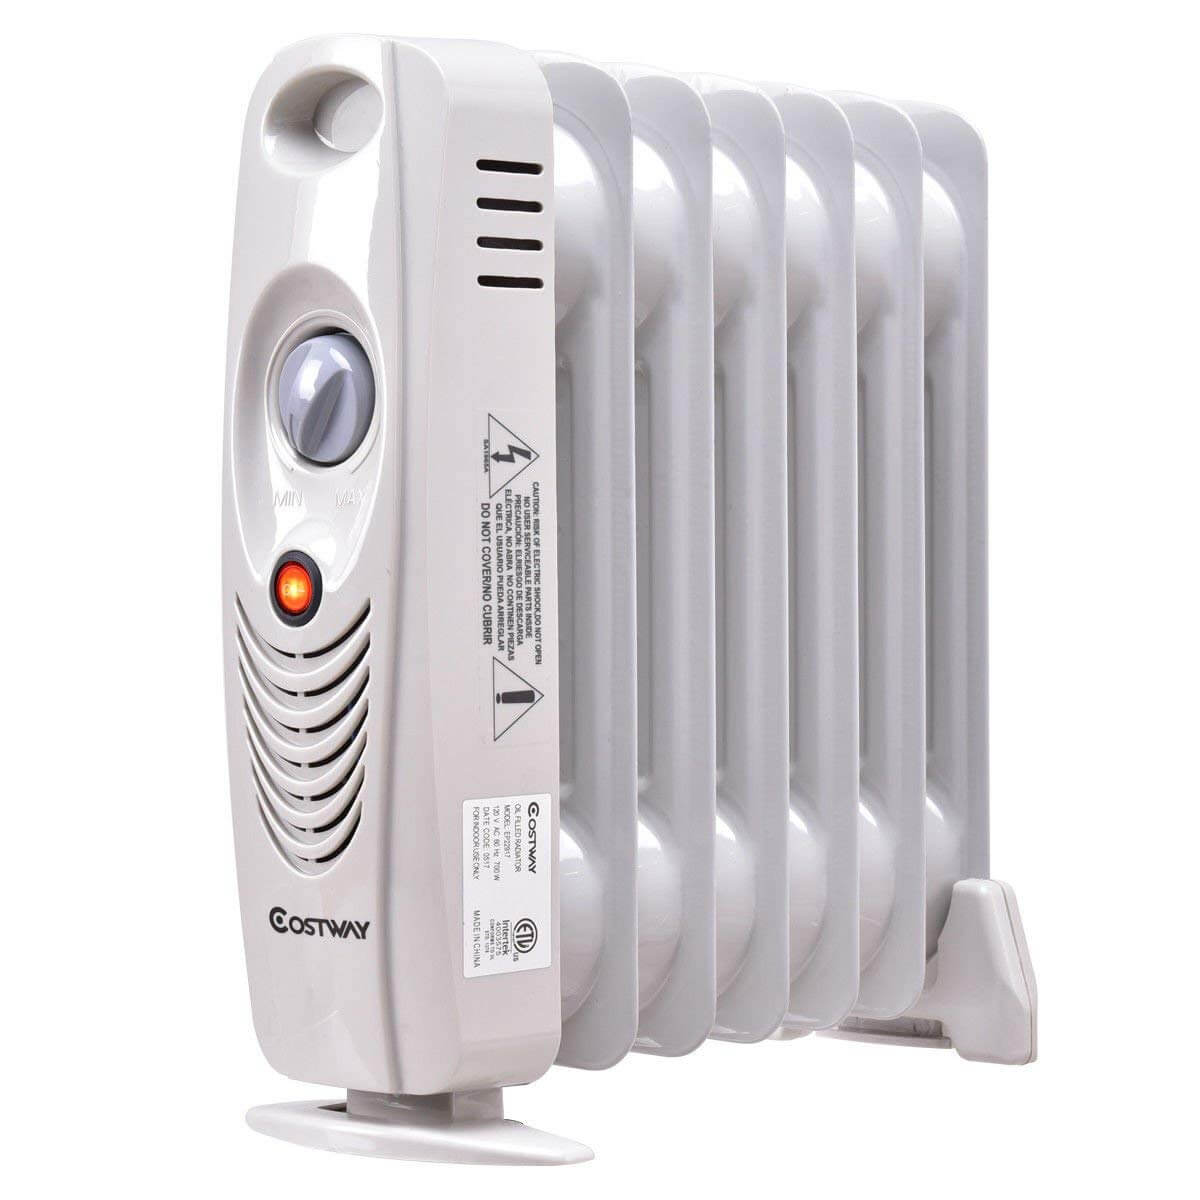 Best Space Heater Reviews And Buying Guide 2018 2019 Portable Electric Baseboard Heaters As Well Small With This Is Another